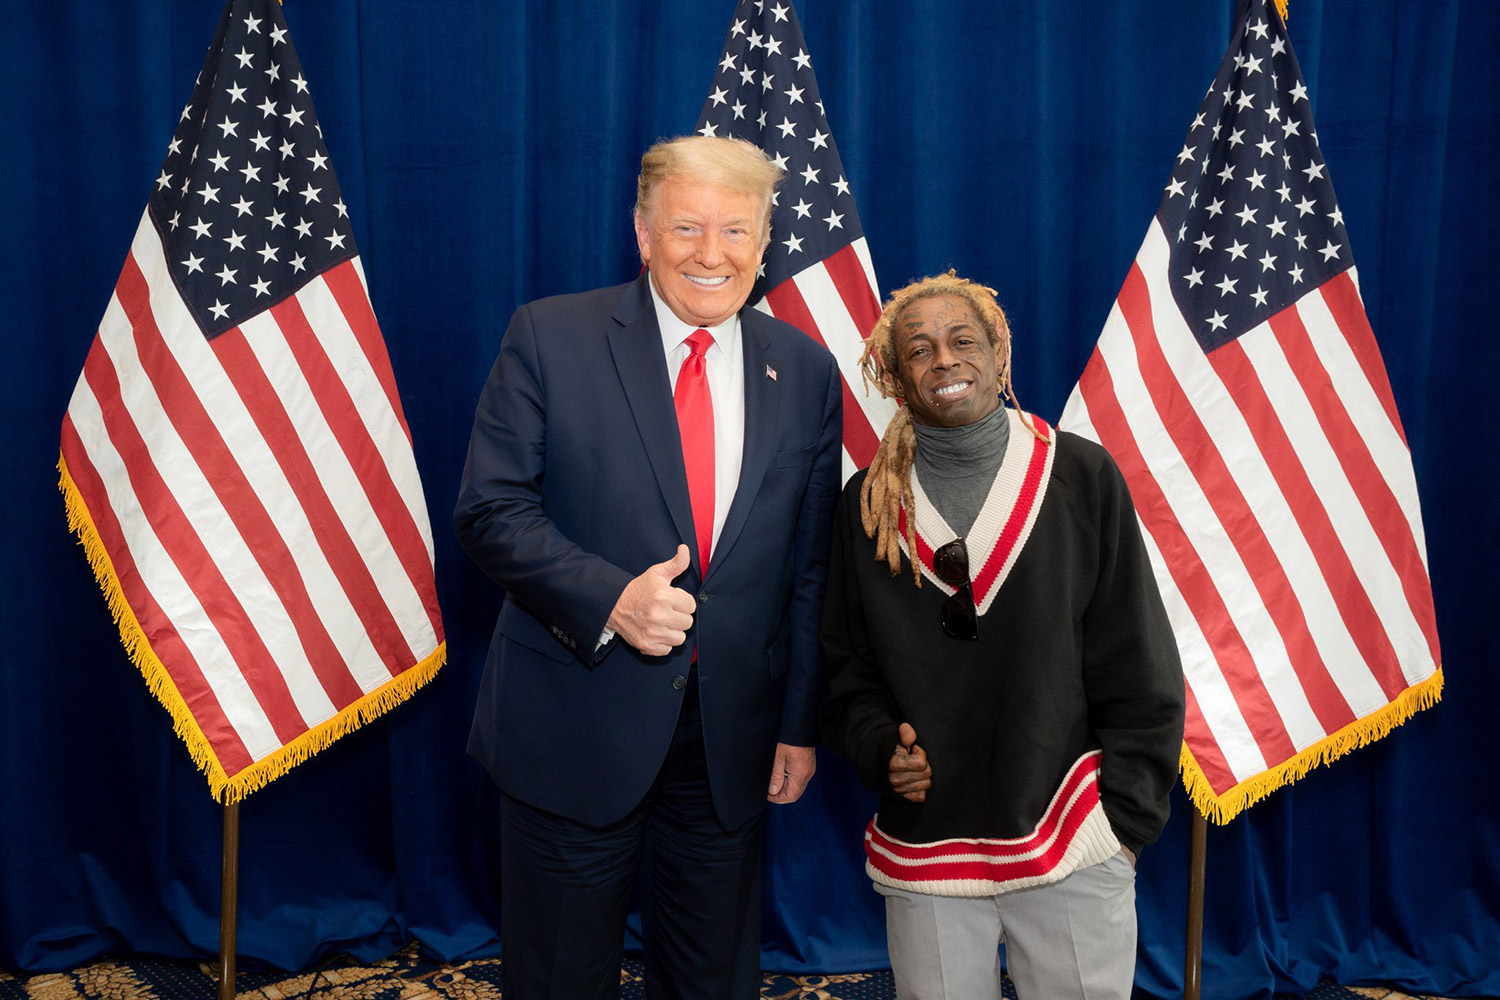 lilwayneisoverparty-trends-after-he-endorses-trump-and-the-platinum-plan